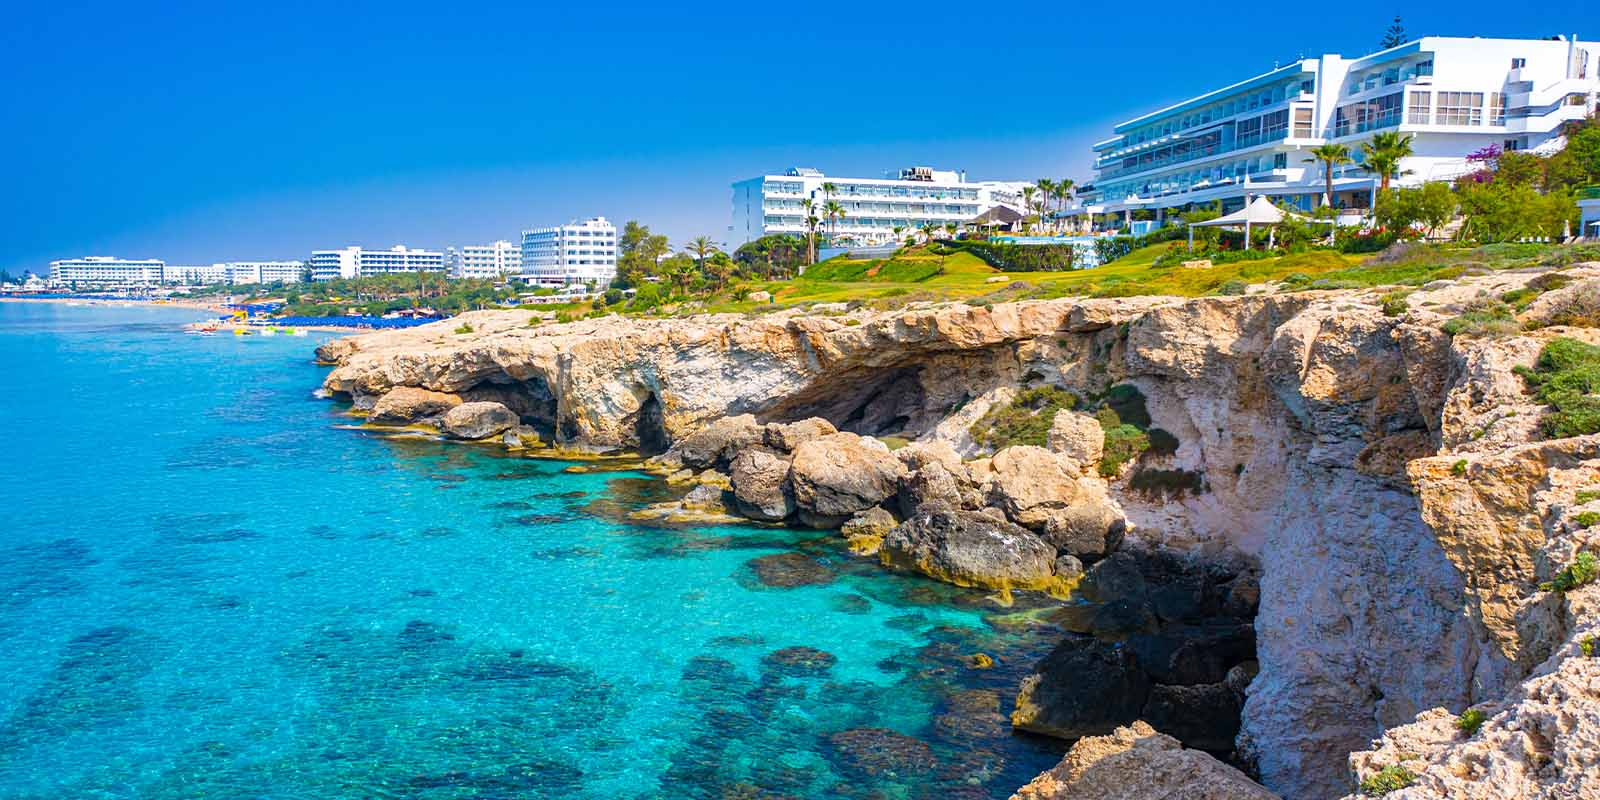 You can obtain EU residency with a minimum investment of €300,000 in Cyprus.